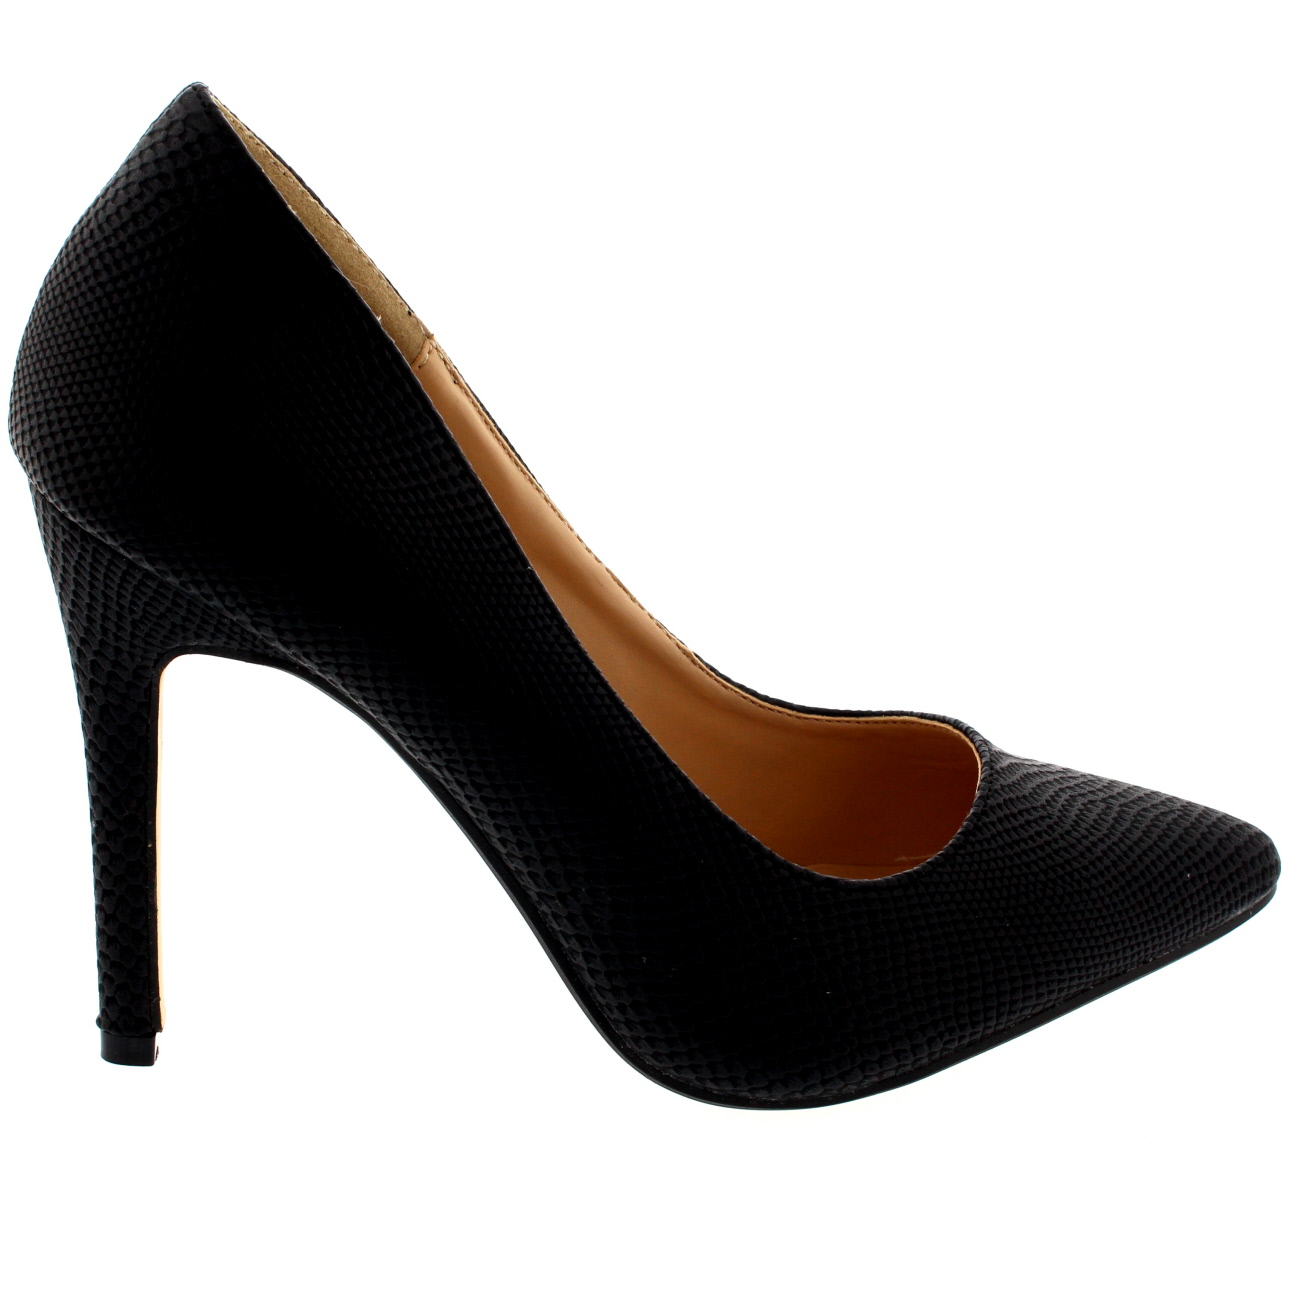 dress formal slip on court shoes evening low